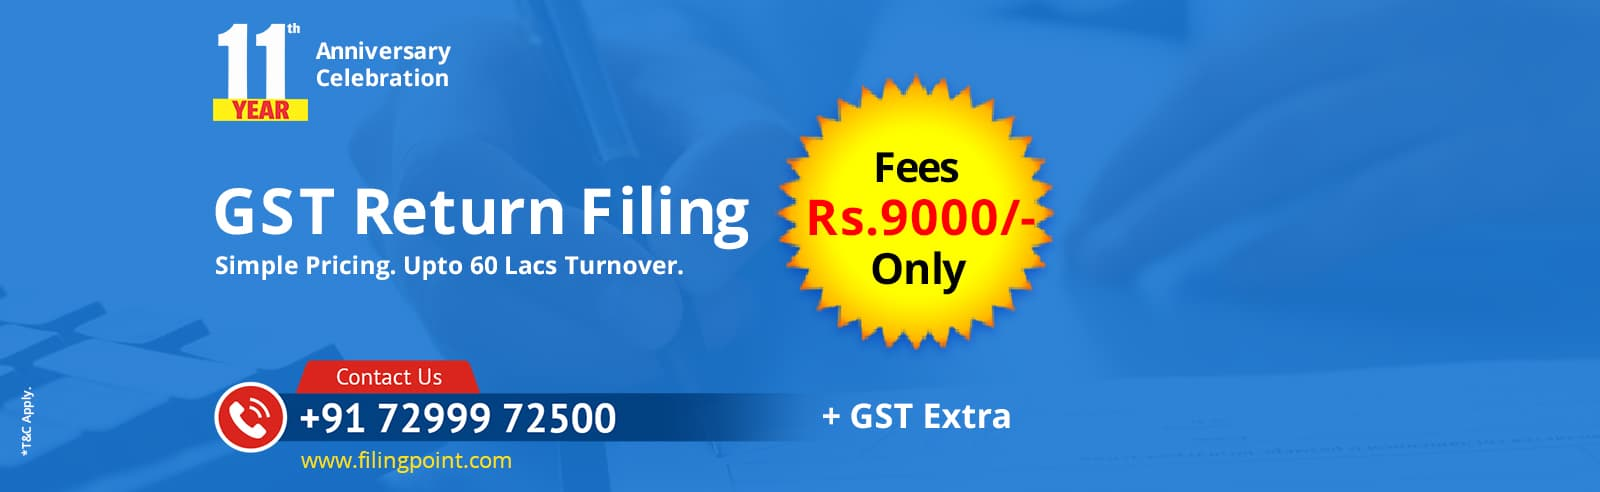 GST Filing Services Near Me Chennai Gandhi Nagar Second Main Road Adyar Gandhi Nagar